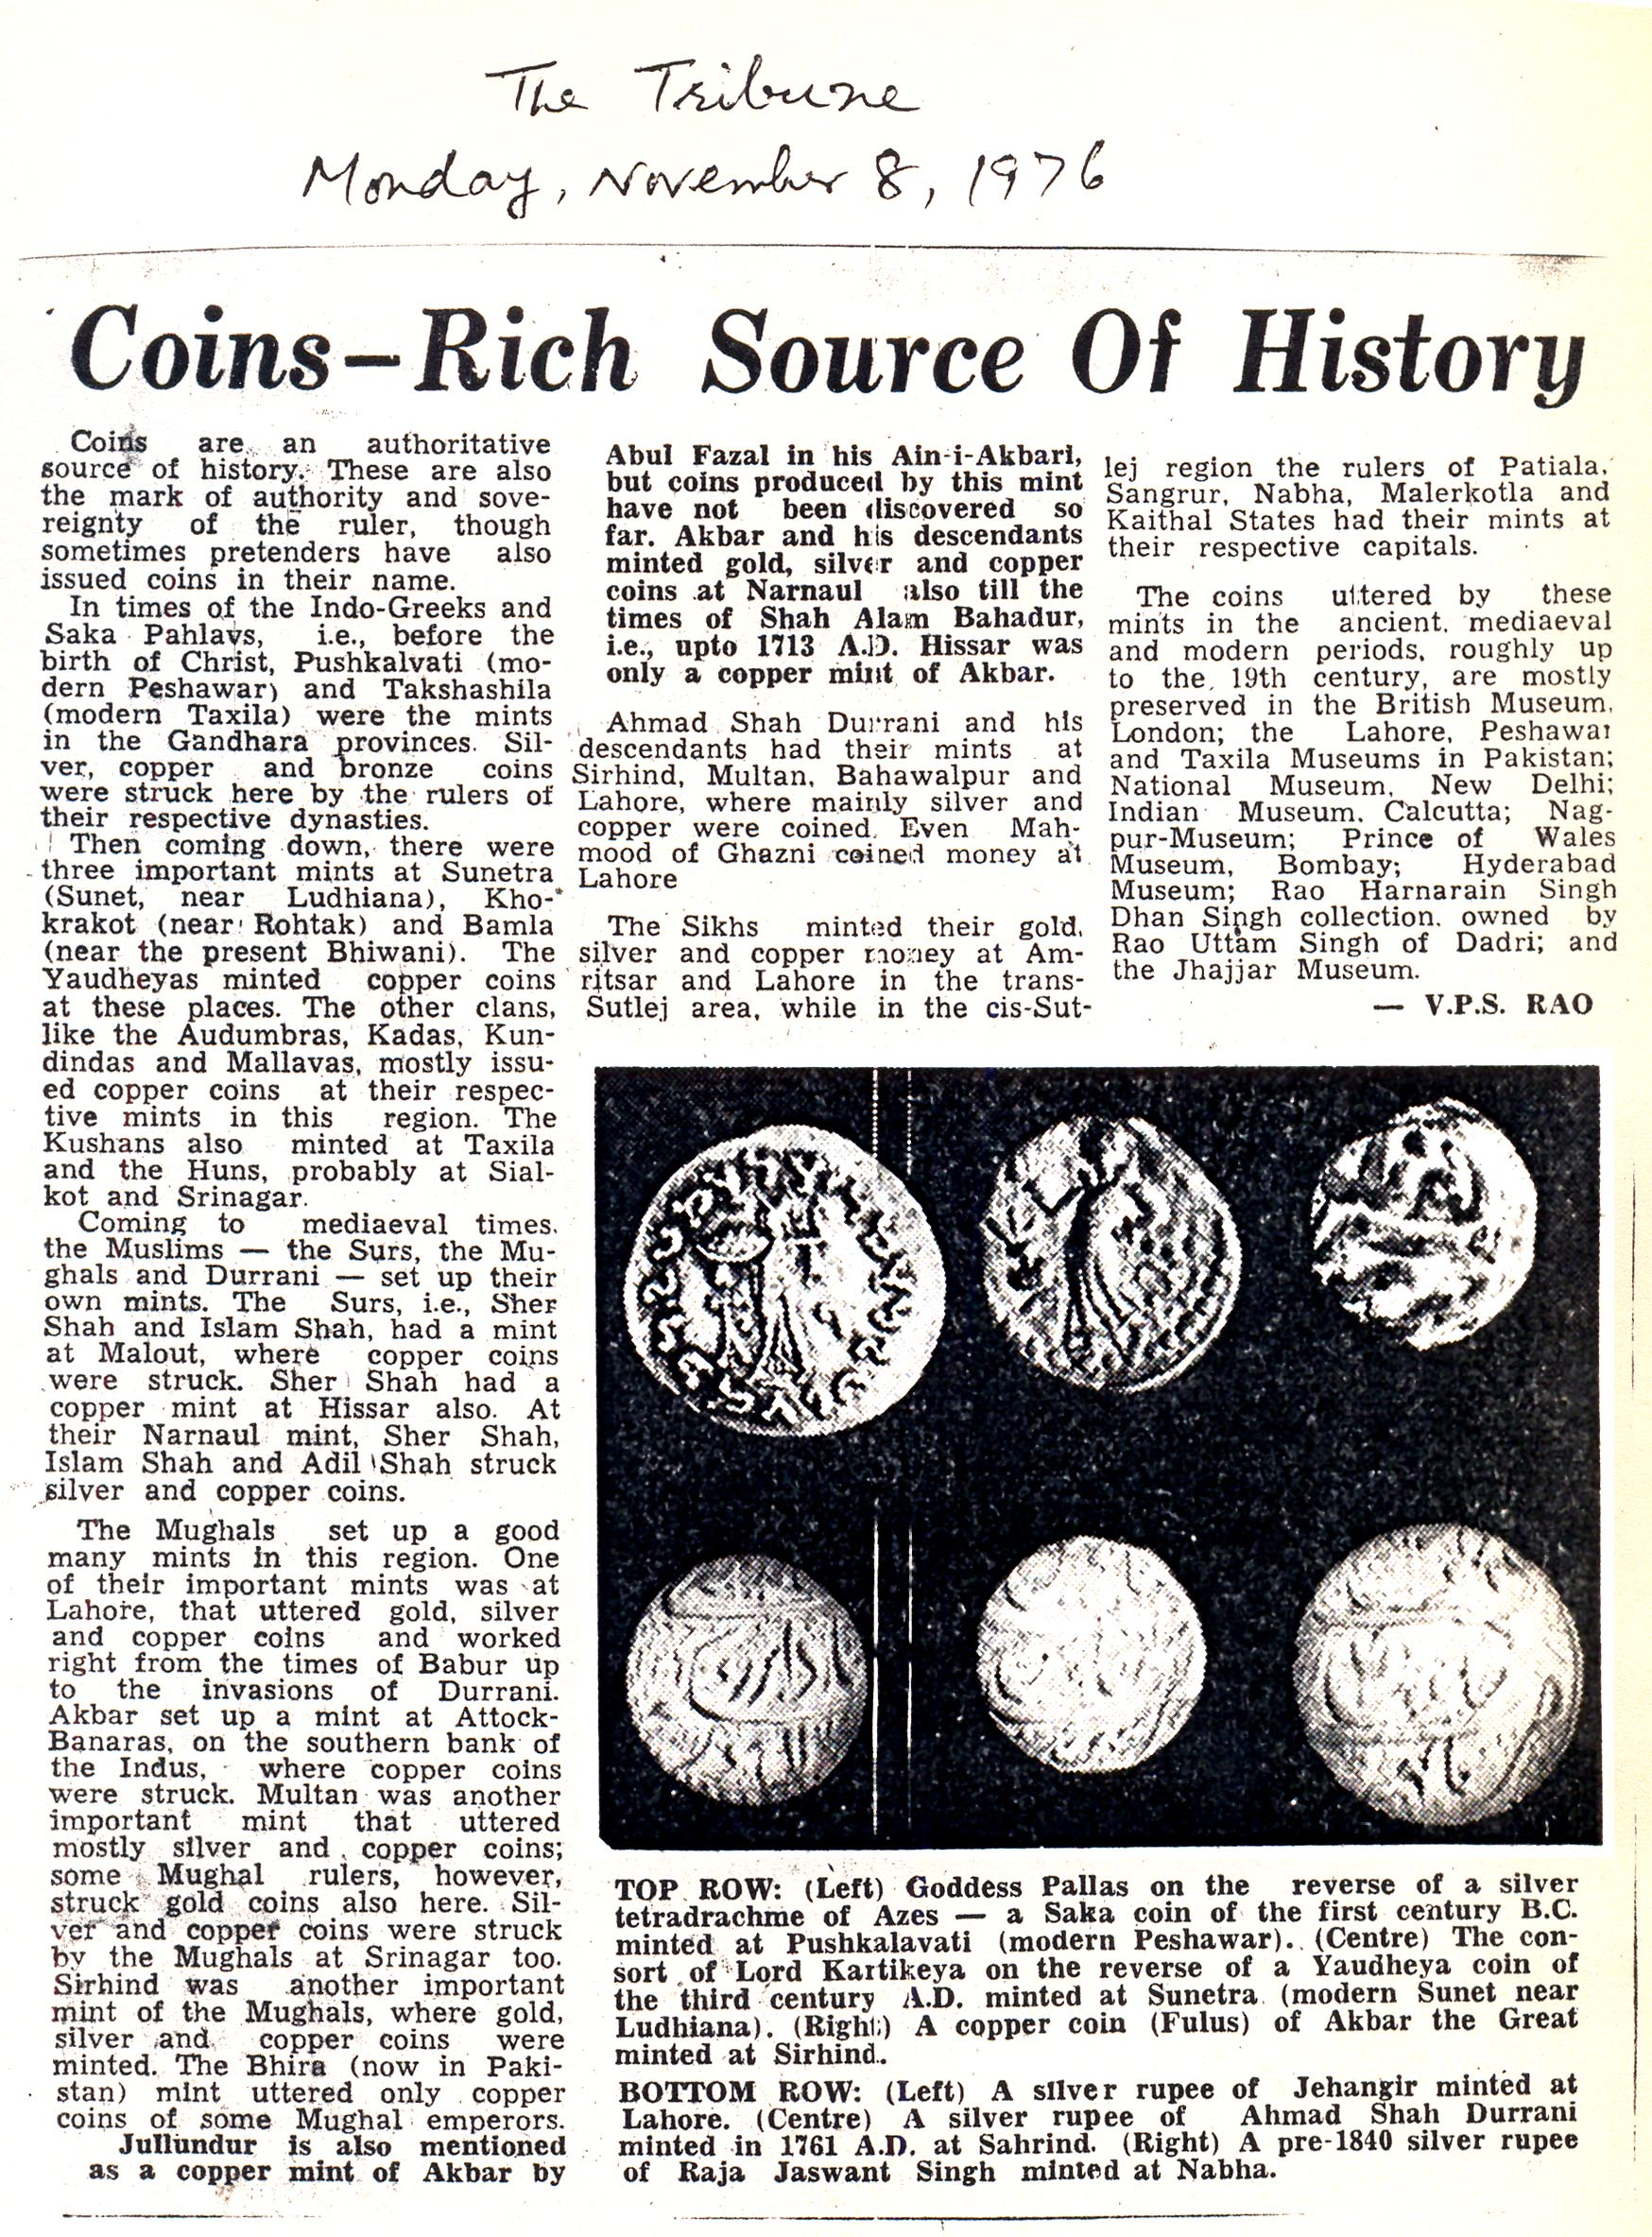 50. Sri VPS Rao on Coins — Rich Source of History